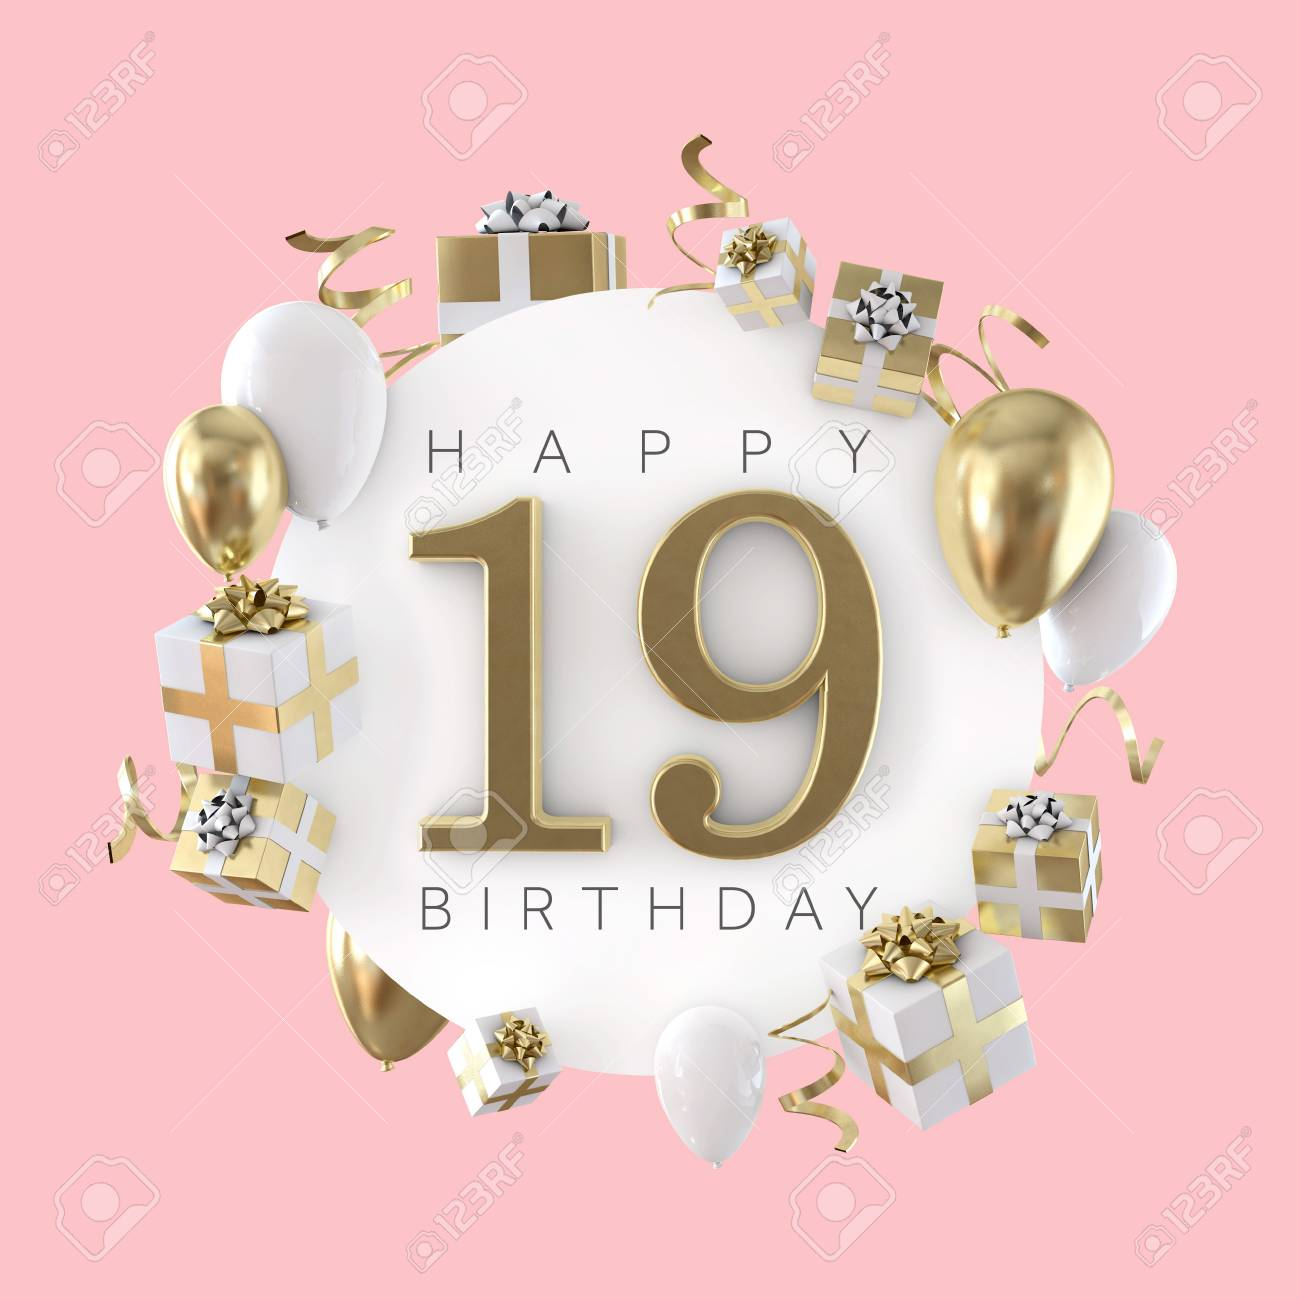 Happy 19th Birthday Party Composition With Balloons And Presents Stock Photo Picture And Royalty Free Image Image 119694725